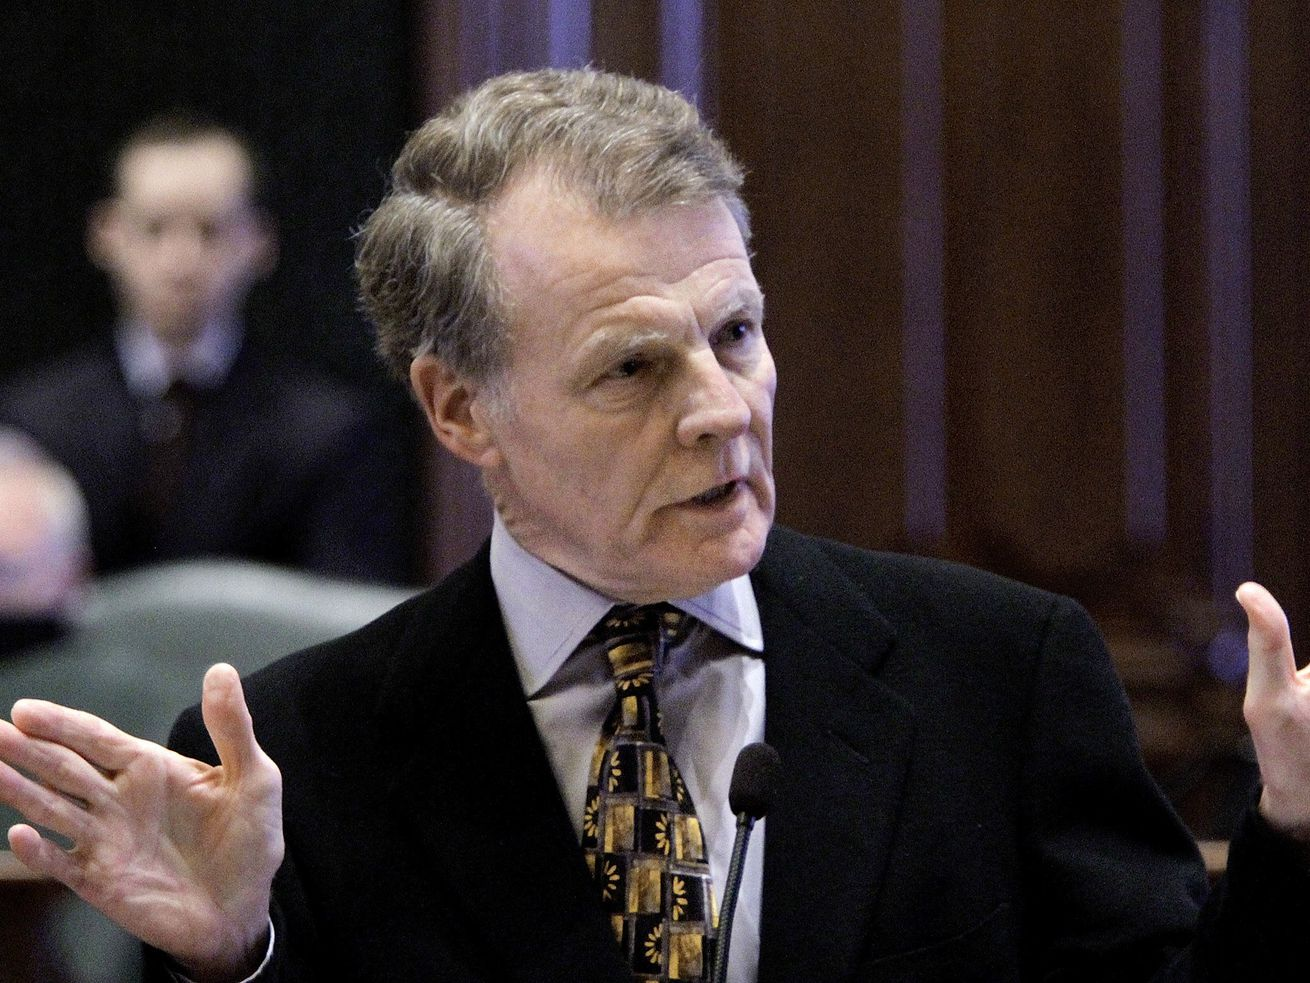 Looks like U.S. attorney has Madigan in his sights